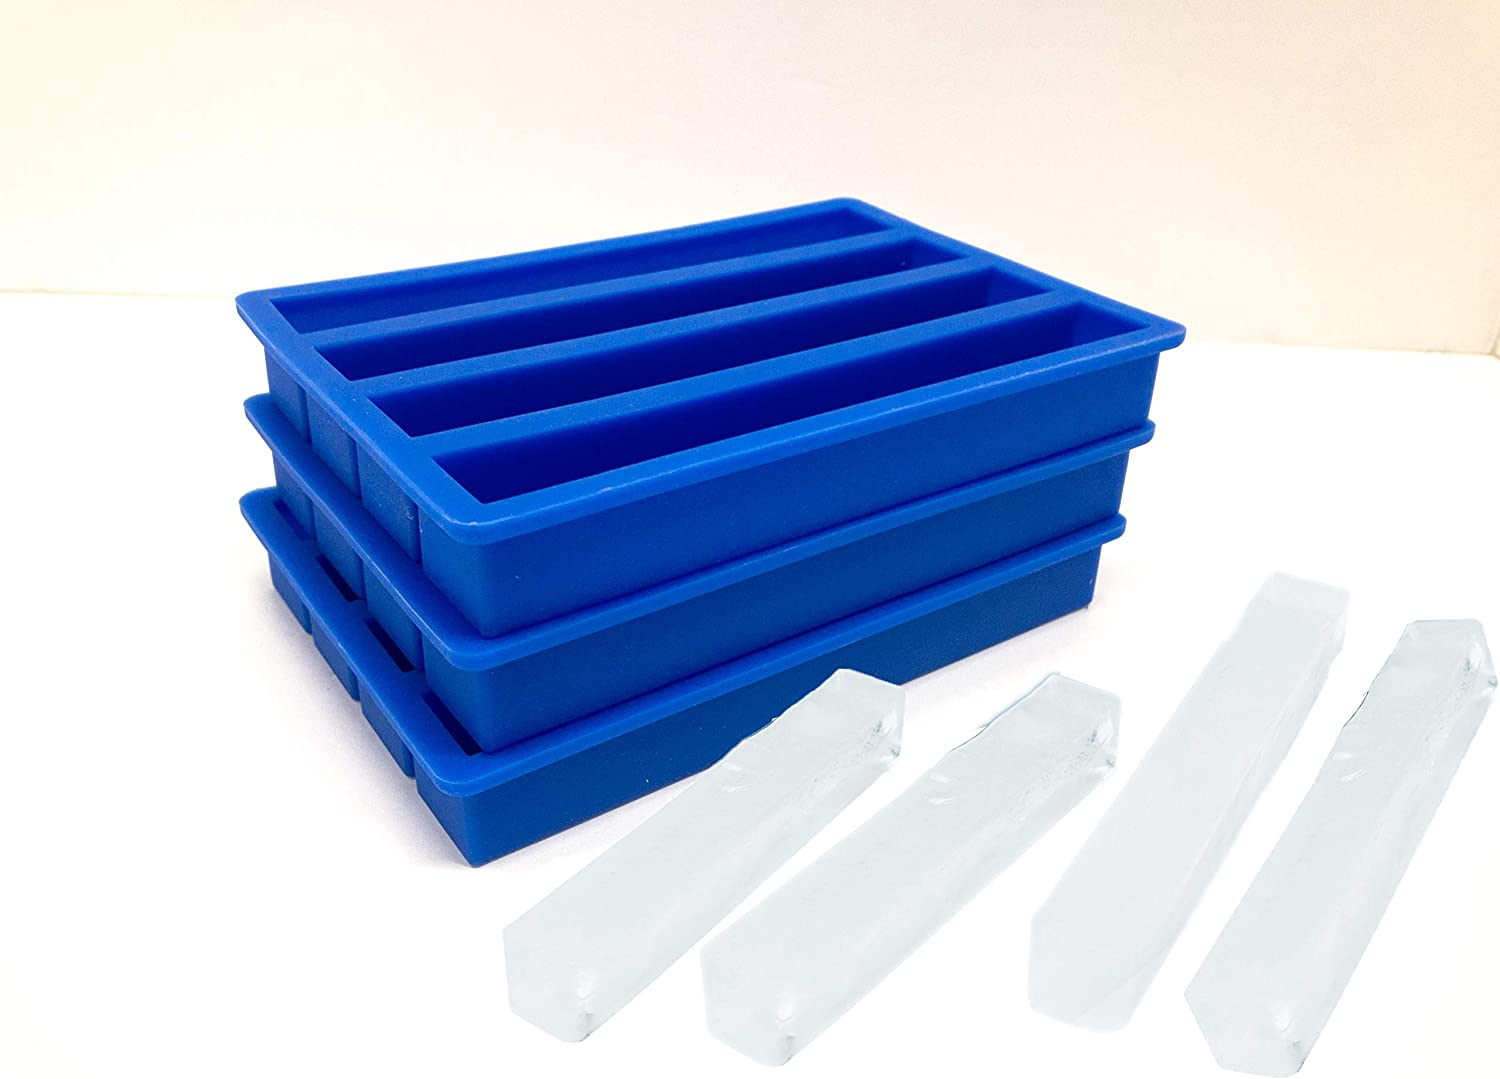 Pen Kit Mall USA SELLER 3 Pack Silicone Ice Cube Trays for Water Bottles Ice Cube Mold 12 Cavity, Easy Release Long Ice Cube Sticks For Bottled Beverage, Soda, Sport Drinks, Burrito Meal Prep